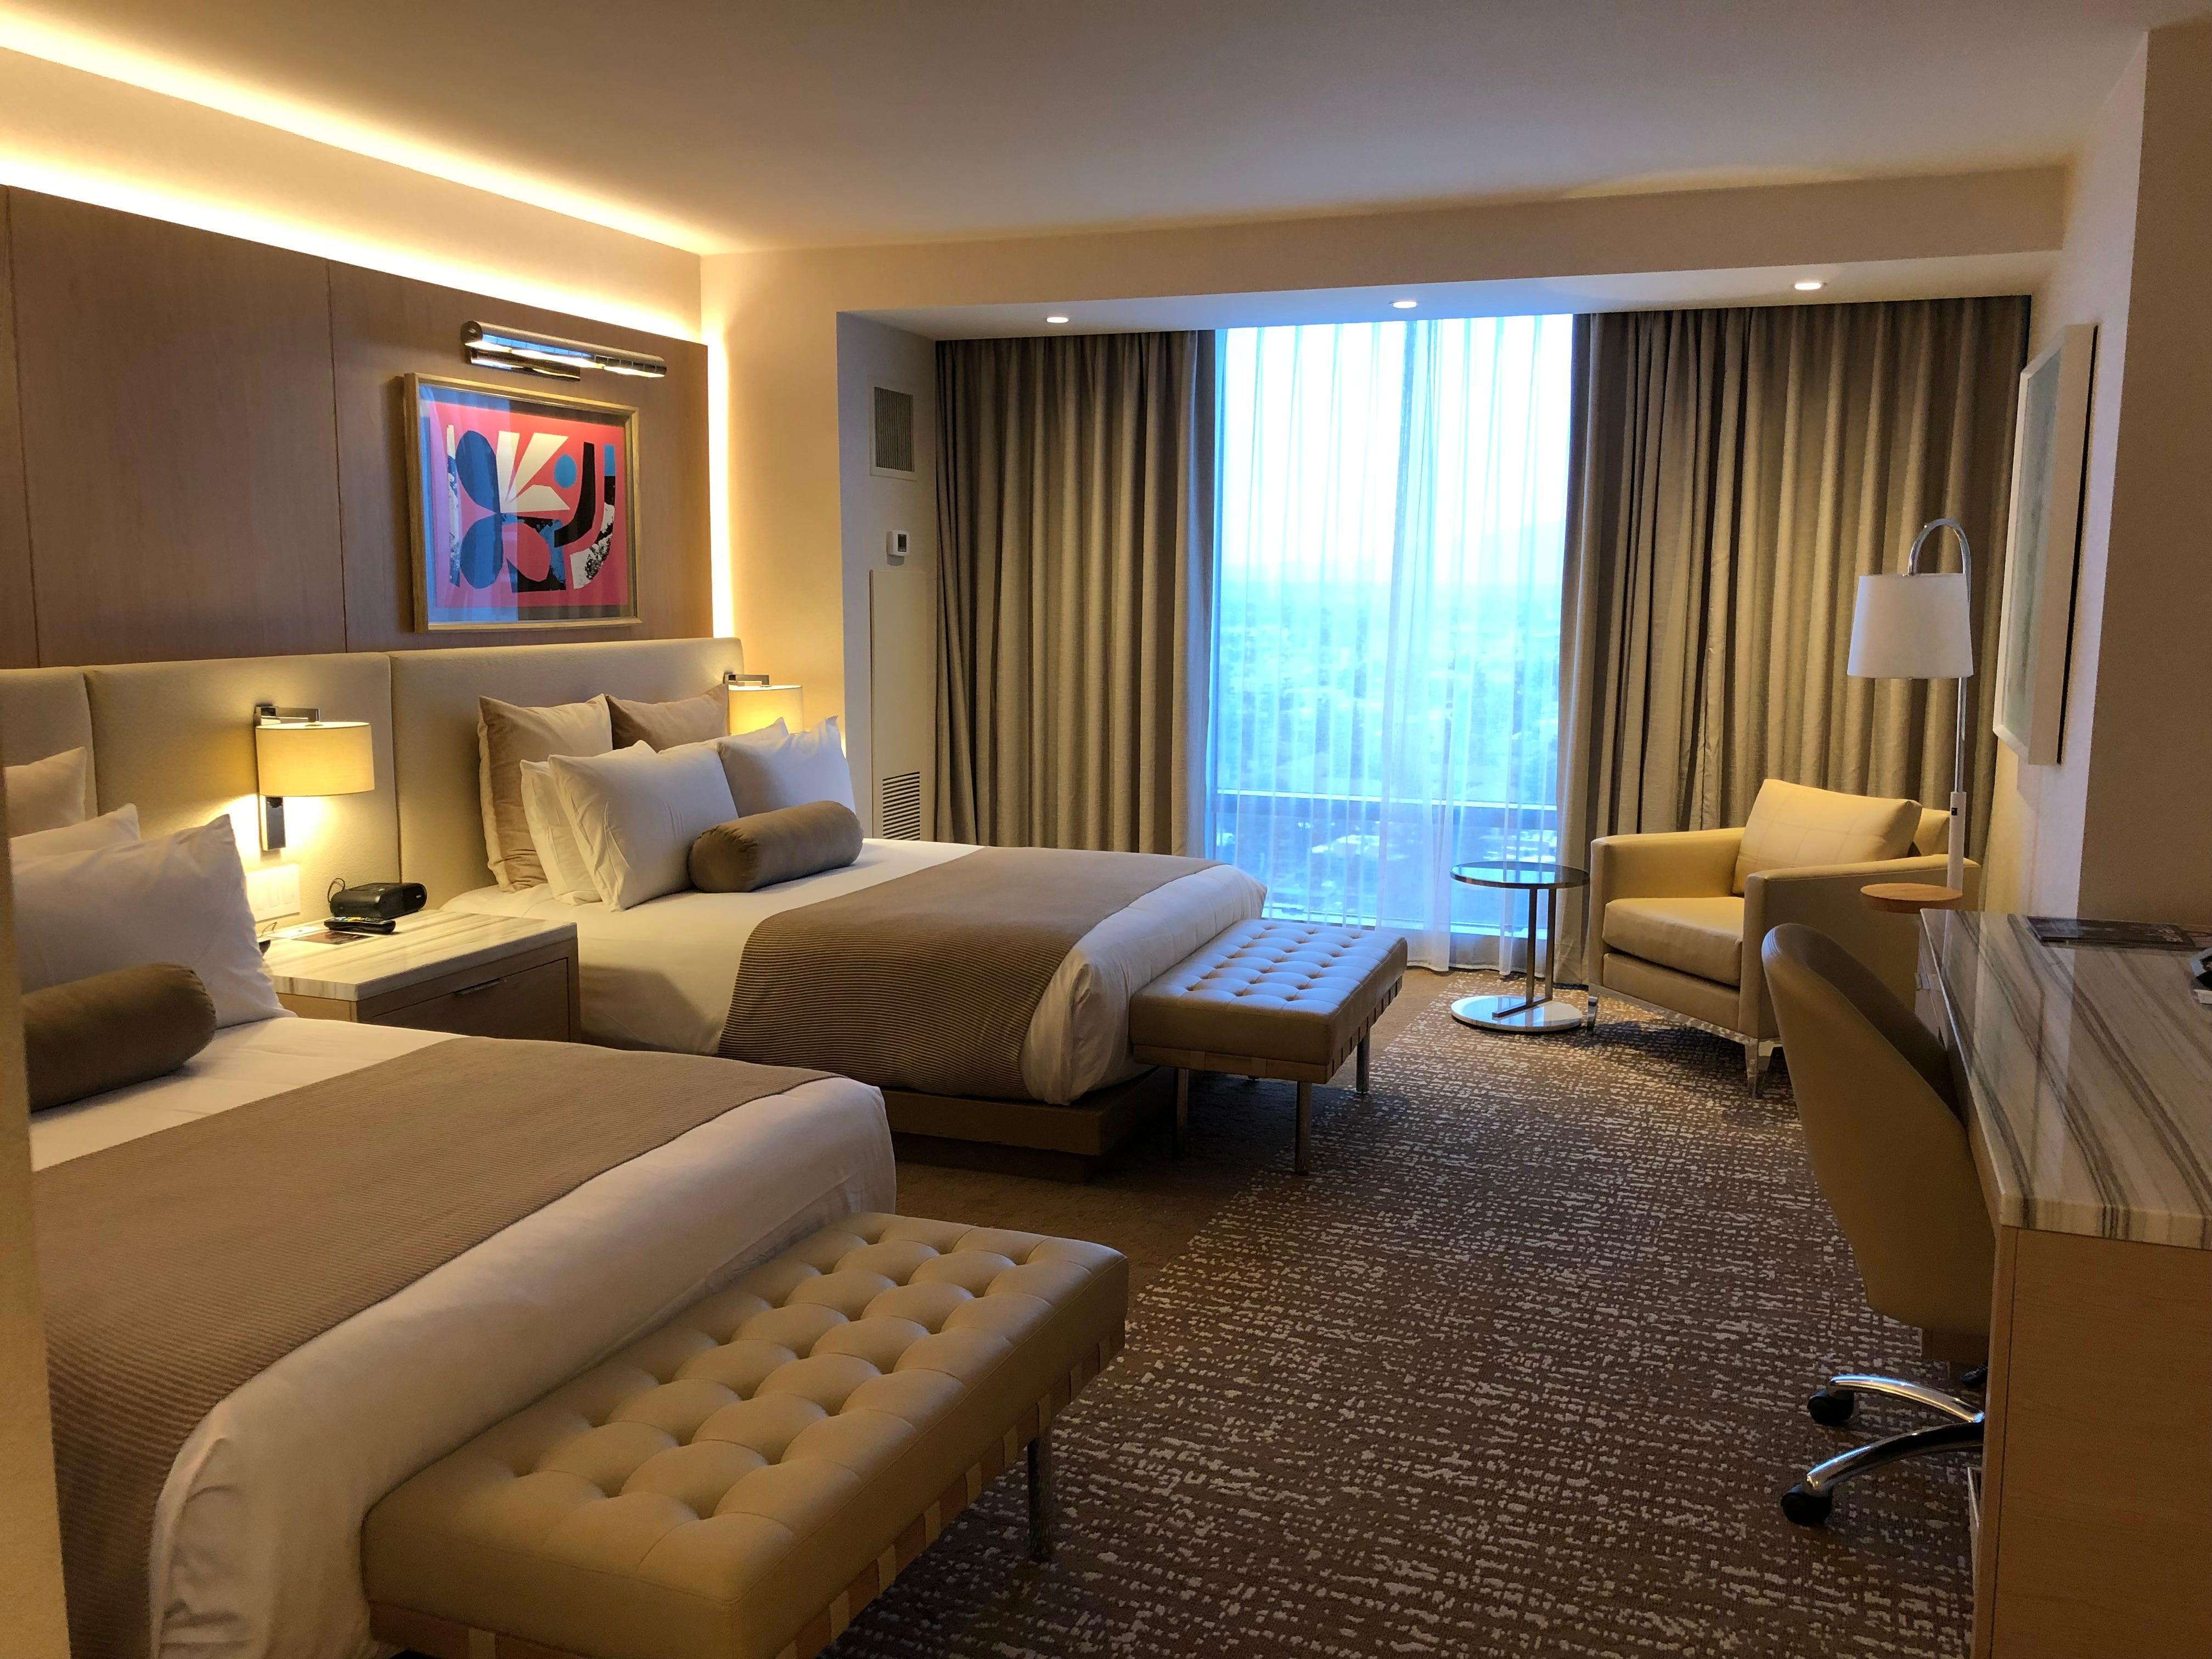 A standard room at the Palms Casino Resort in Las Vegas.